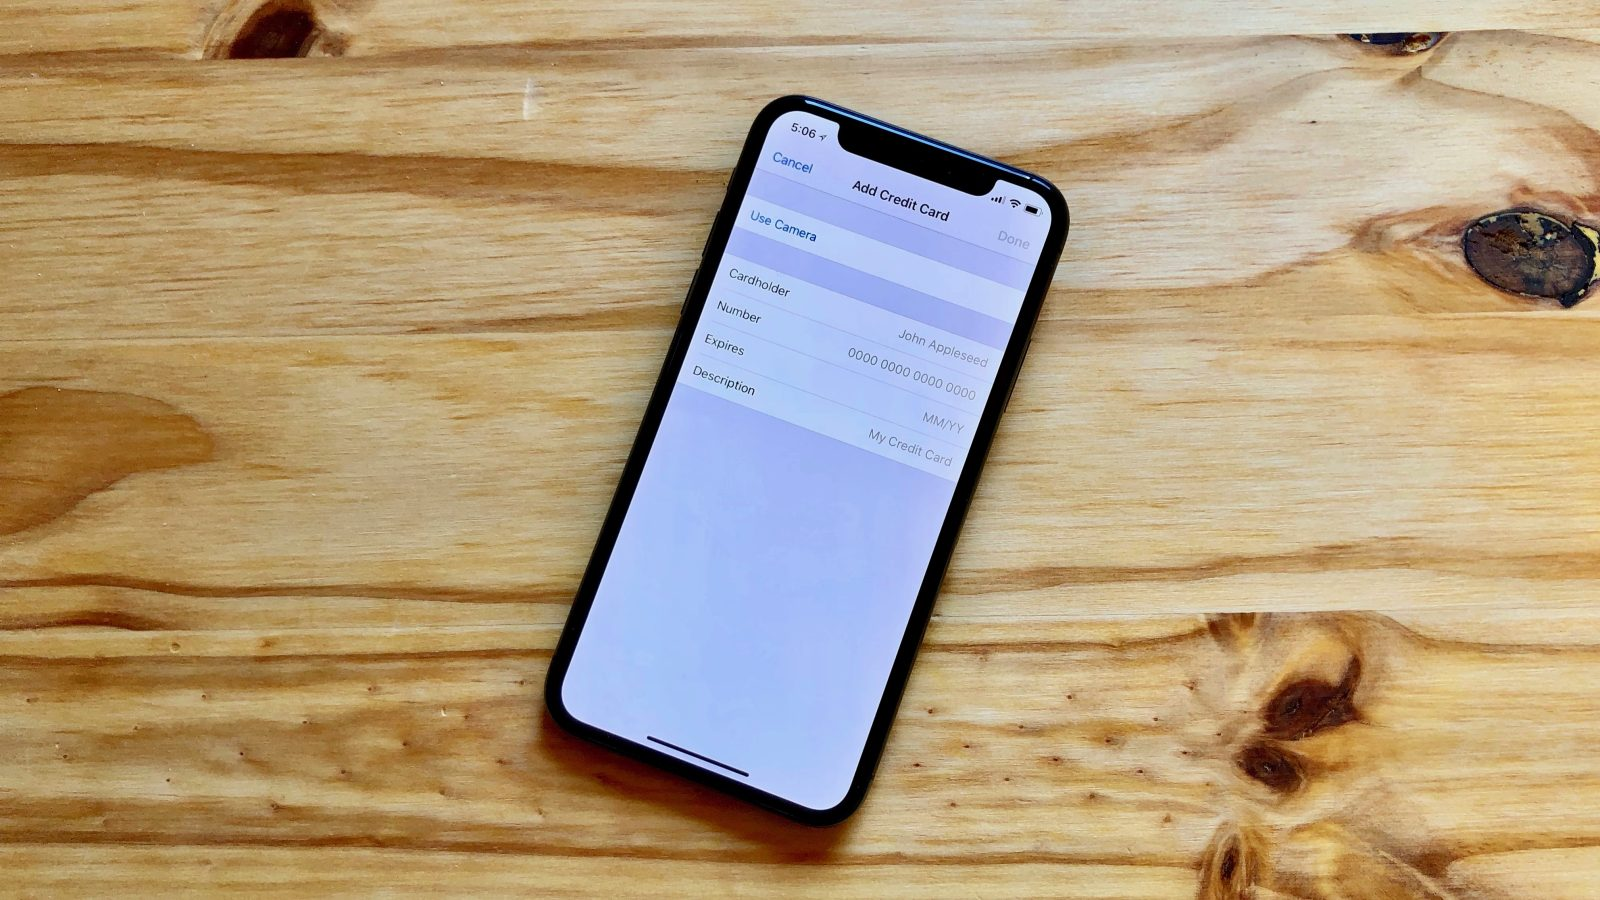 How to add credit cards to Safari's AutoFill on iPhone - 9to5Mac